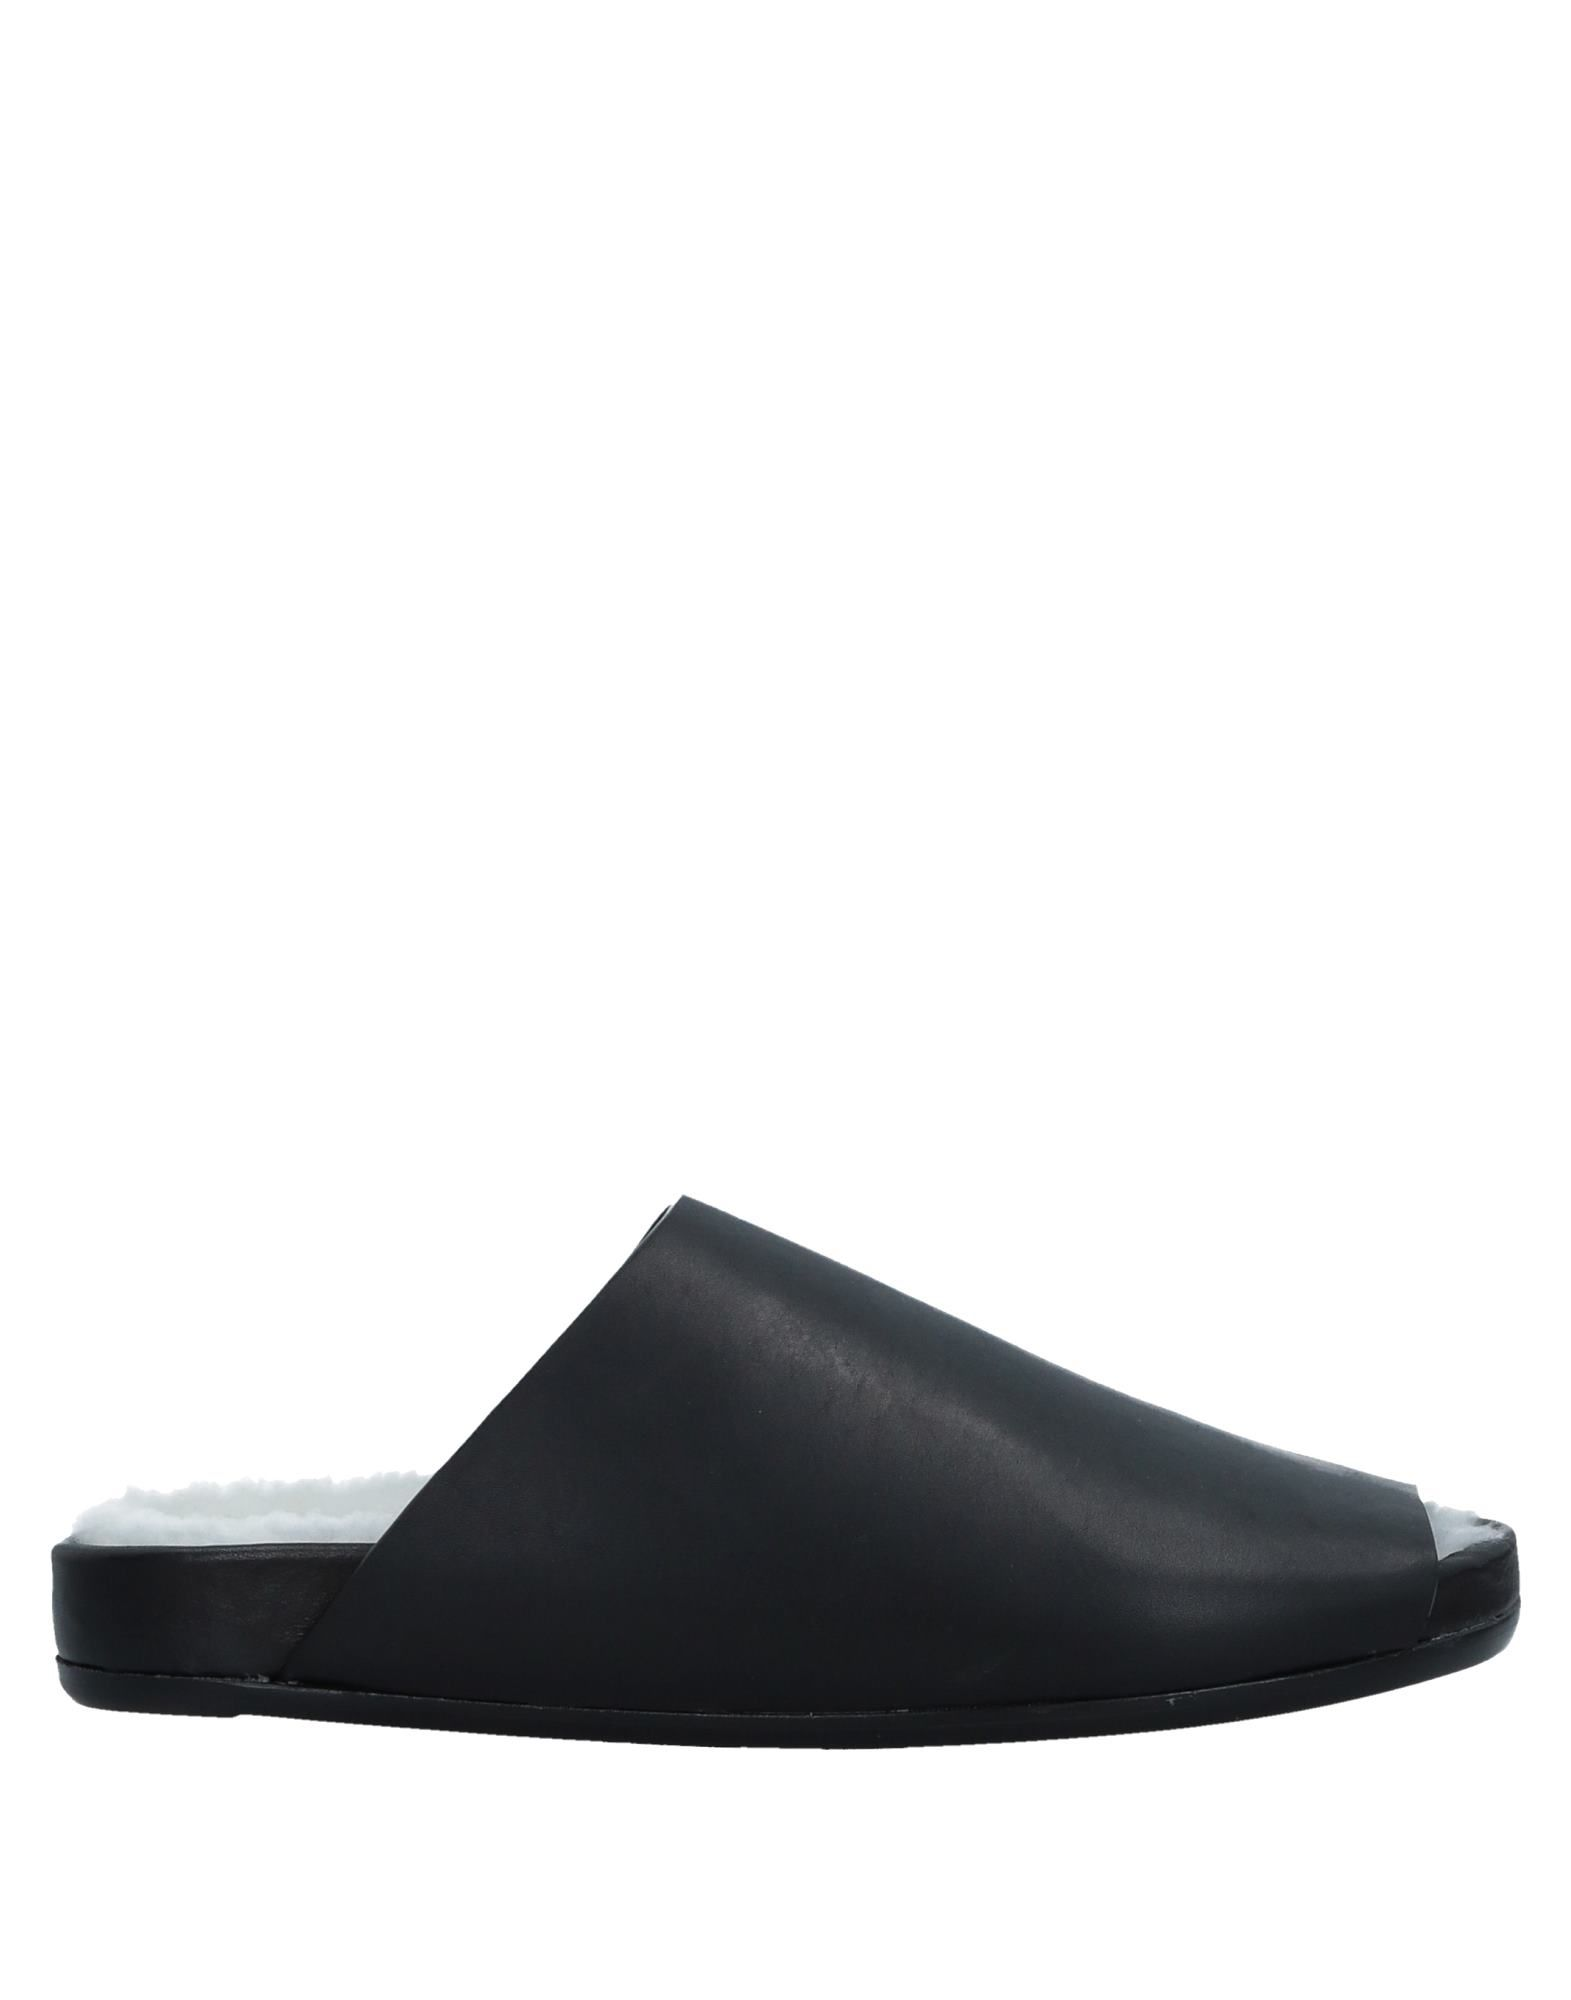 Rick Owens Sandals Sandals - Men Rick Owens Sandals Sandals online on  United Kingdom - 11519900VC 3c7f8b